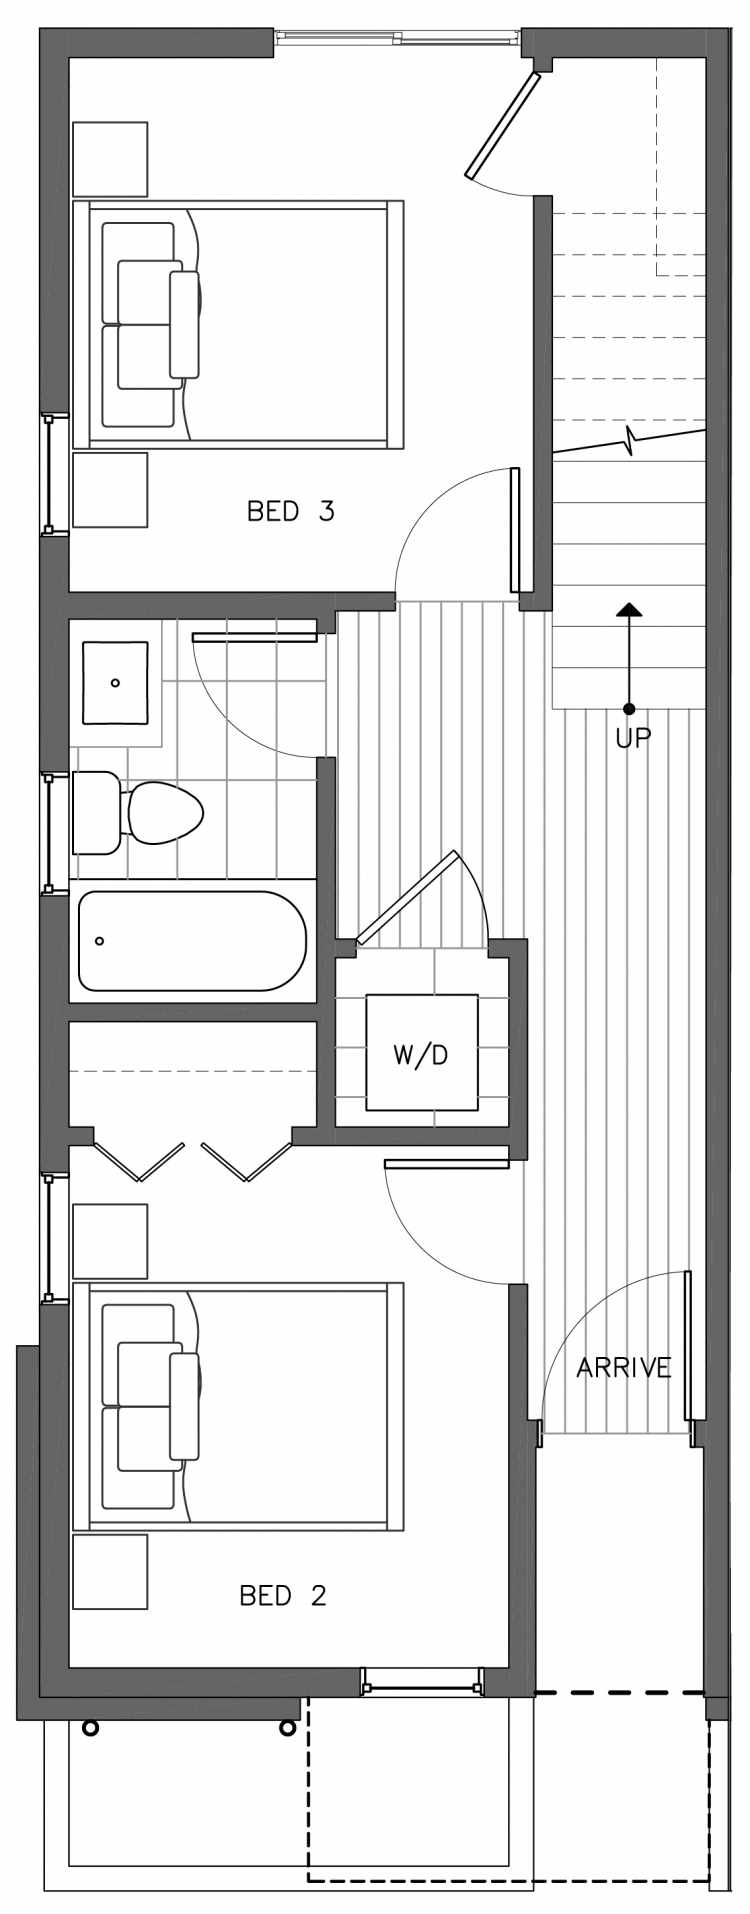 First Floor Plan of 3236C 14th Ave W, One of the Harloe Townhomes in North Queen Anne by Isola Homes